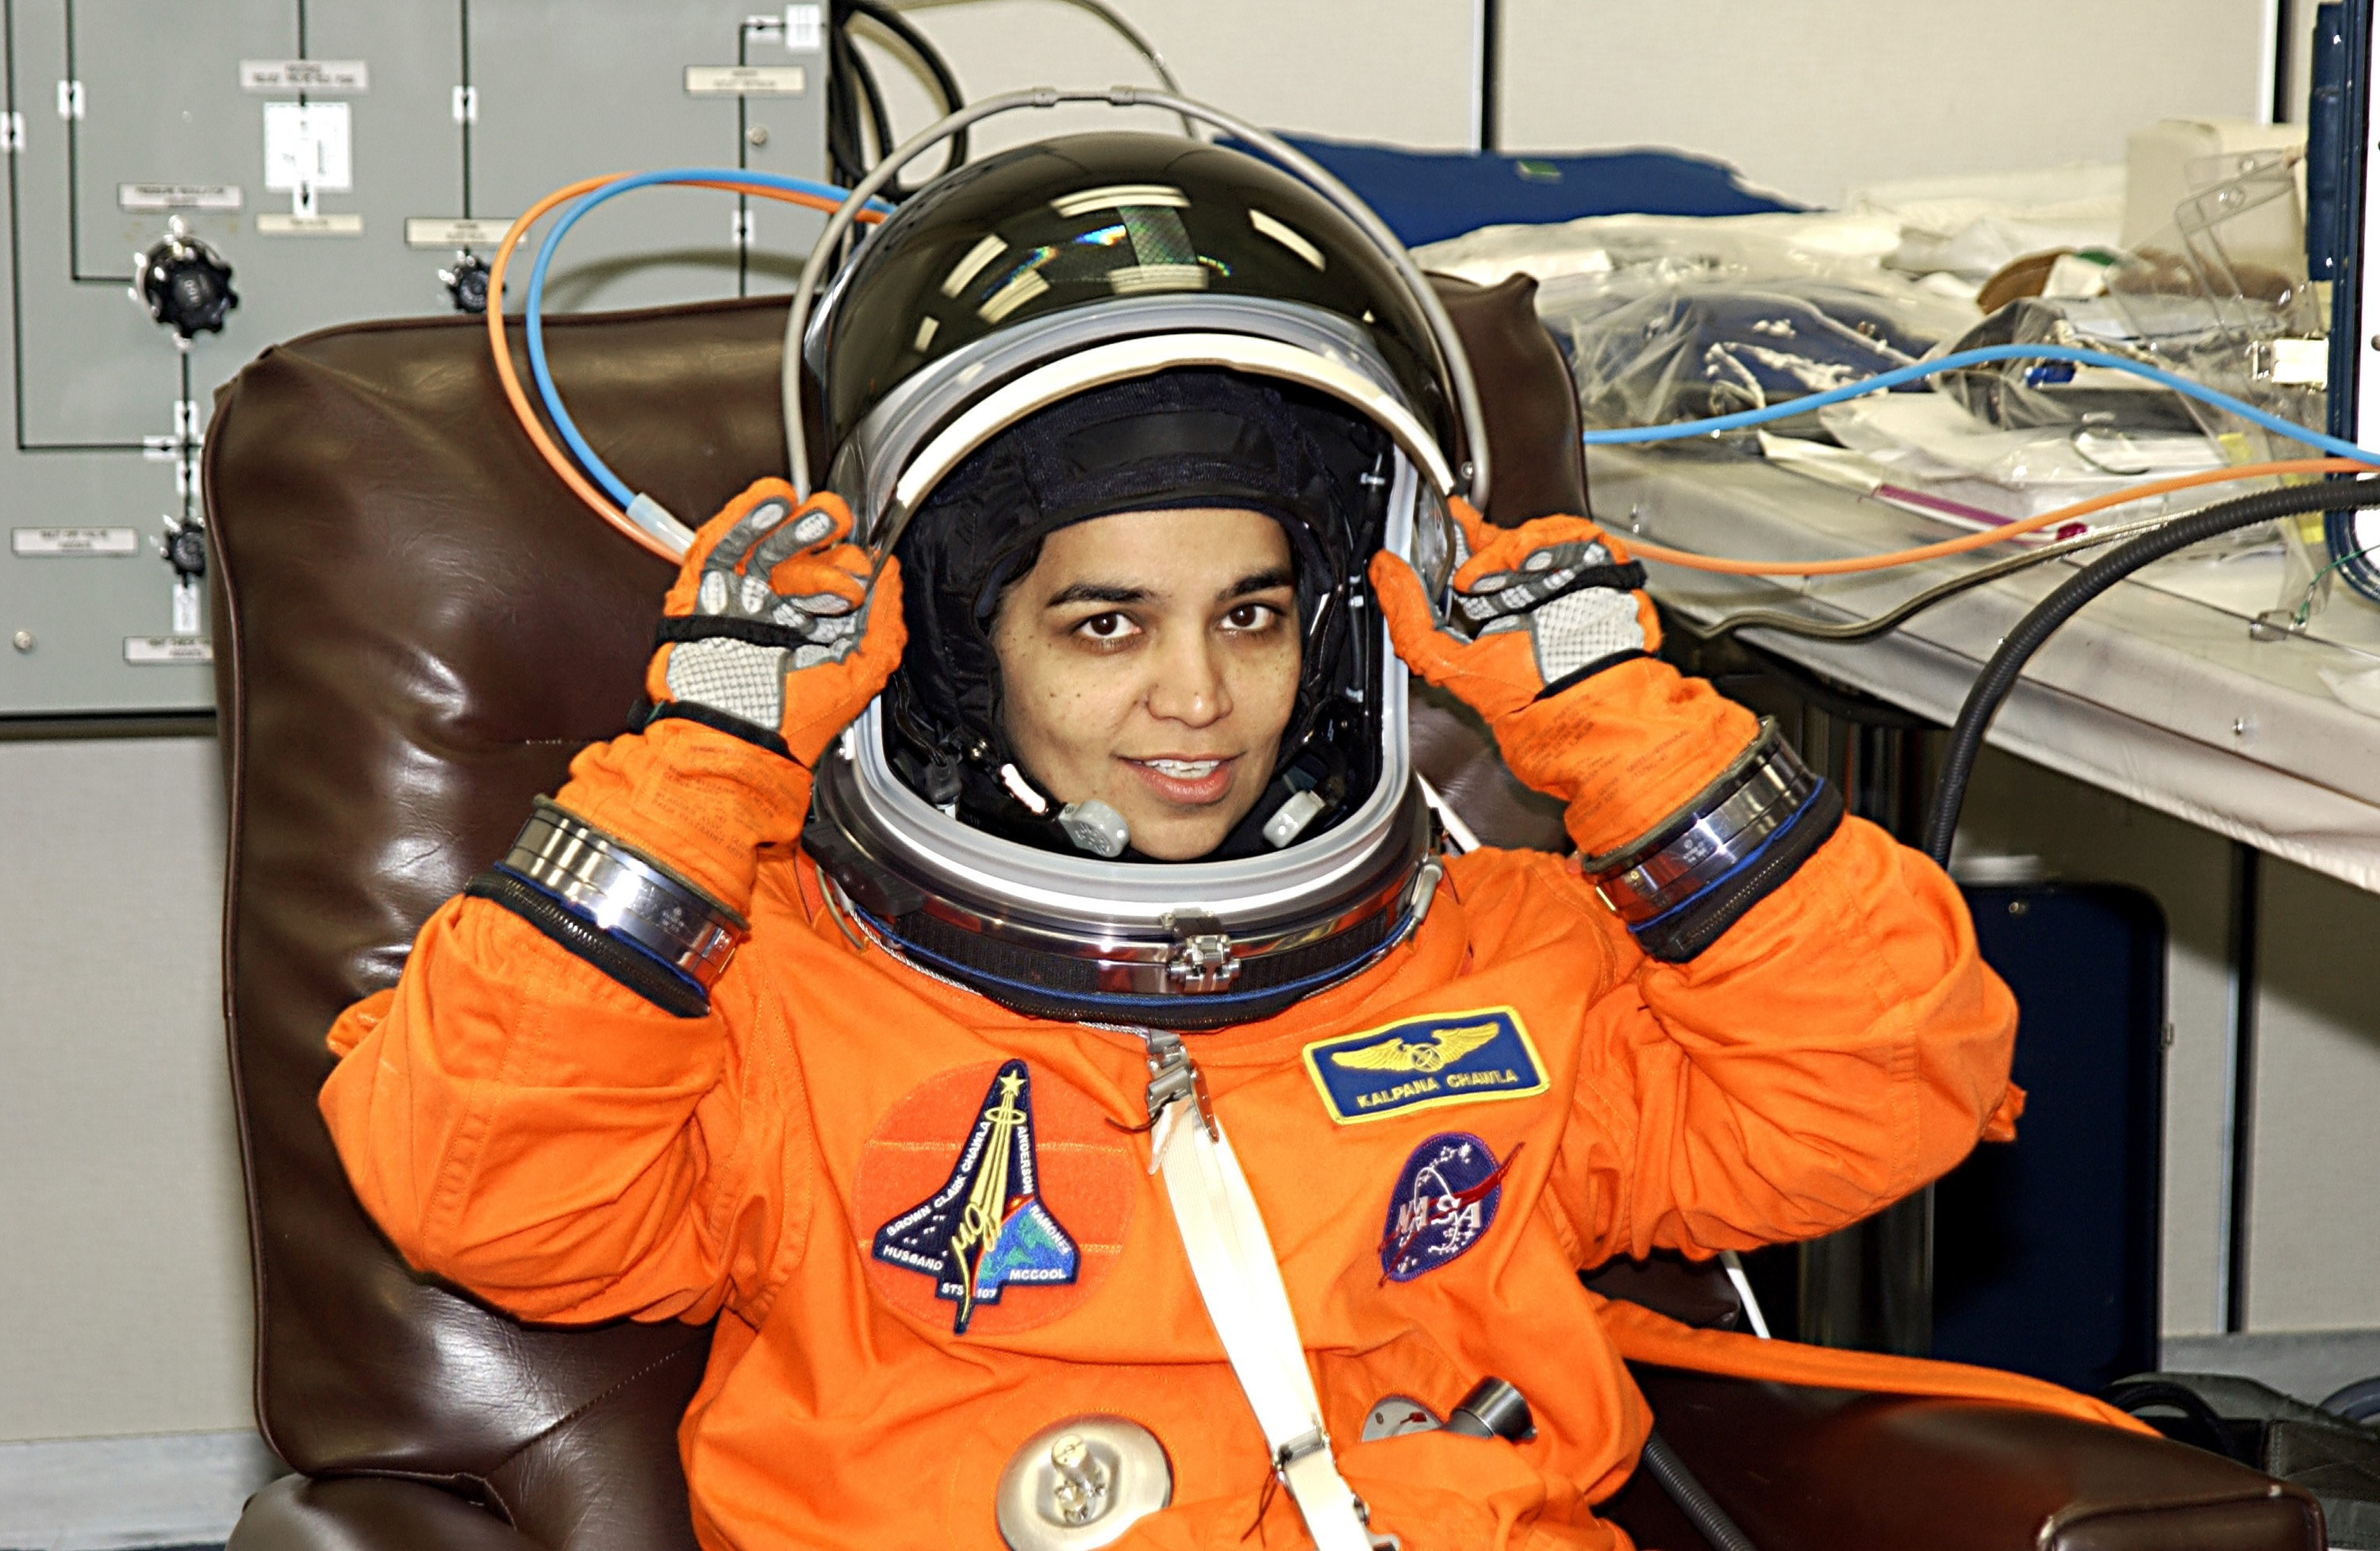 Suits Hd Wallpaper Quotes Kalpana Chawla Known People Famous People News And